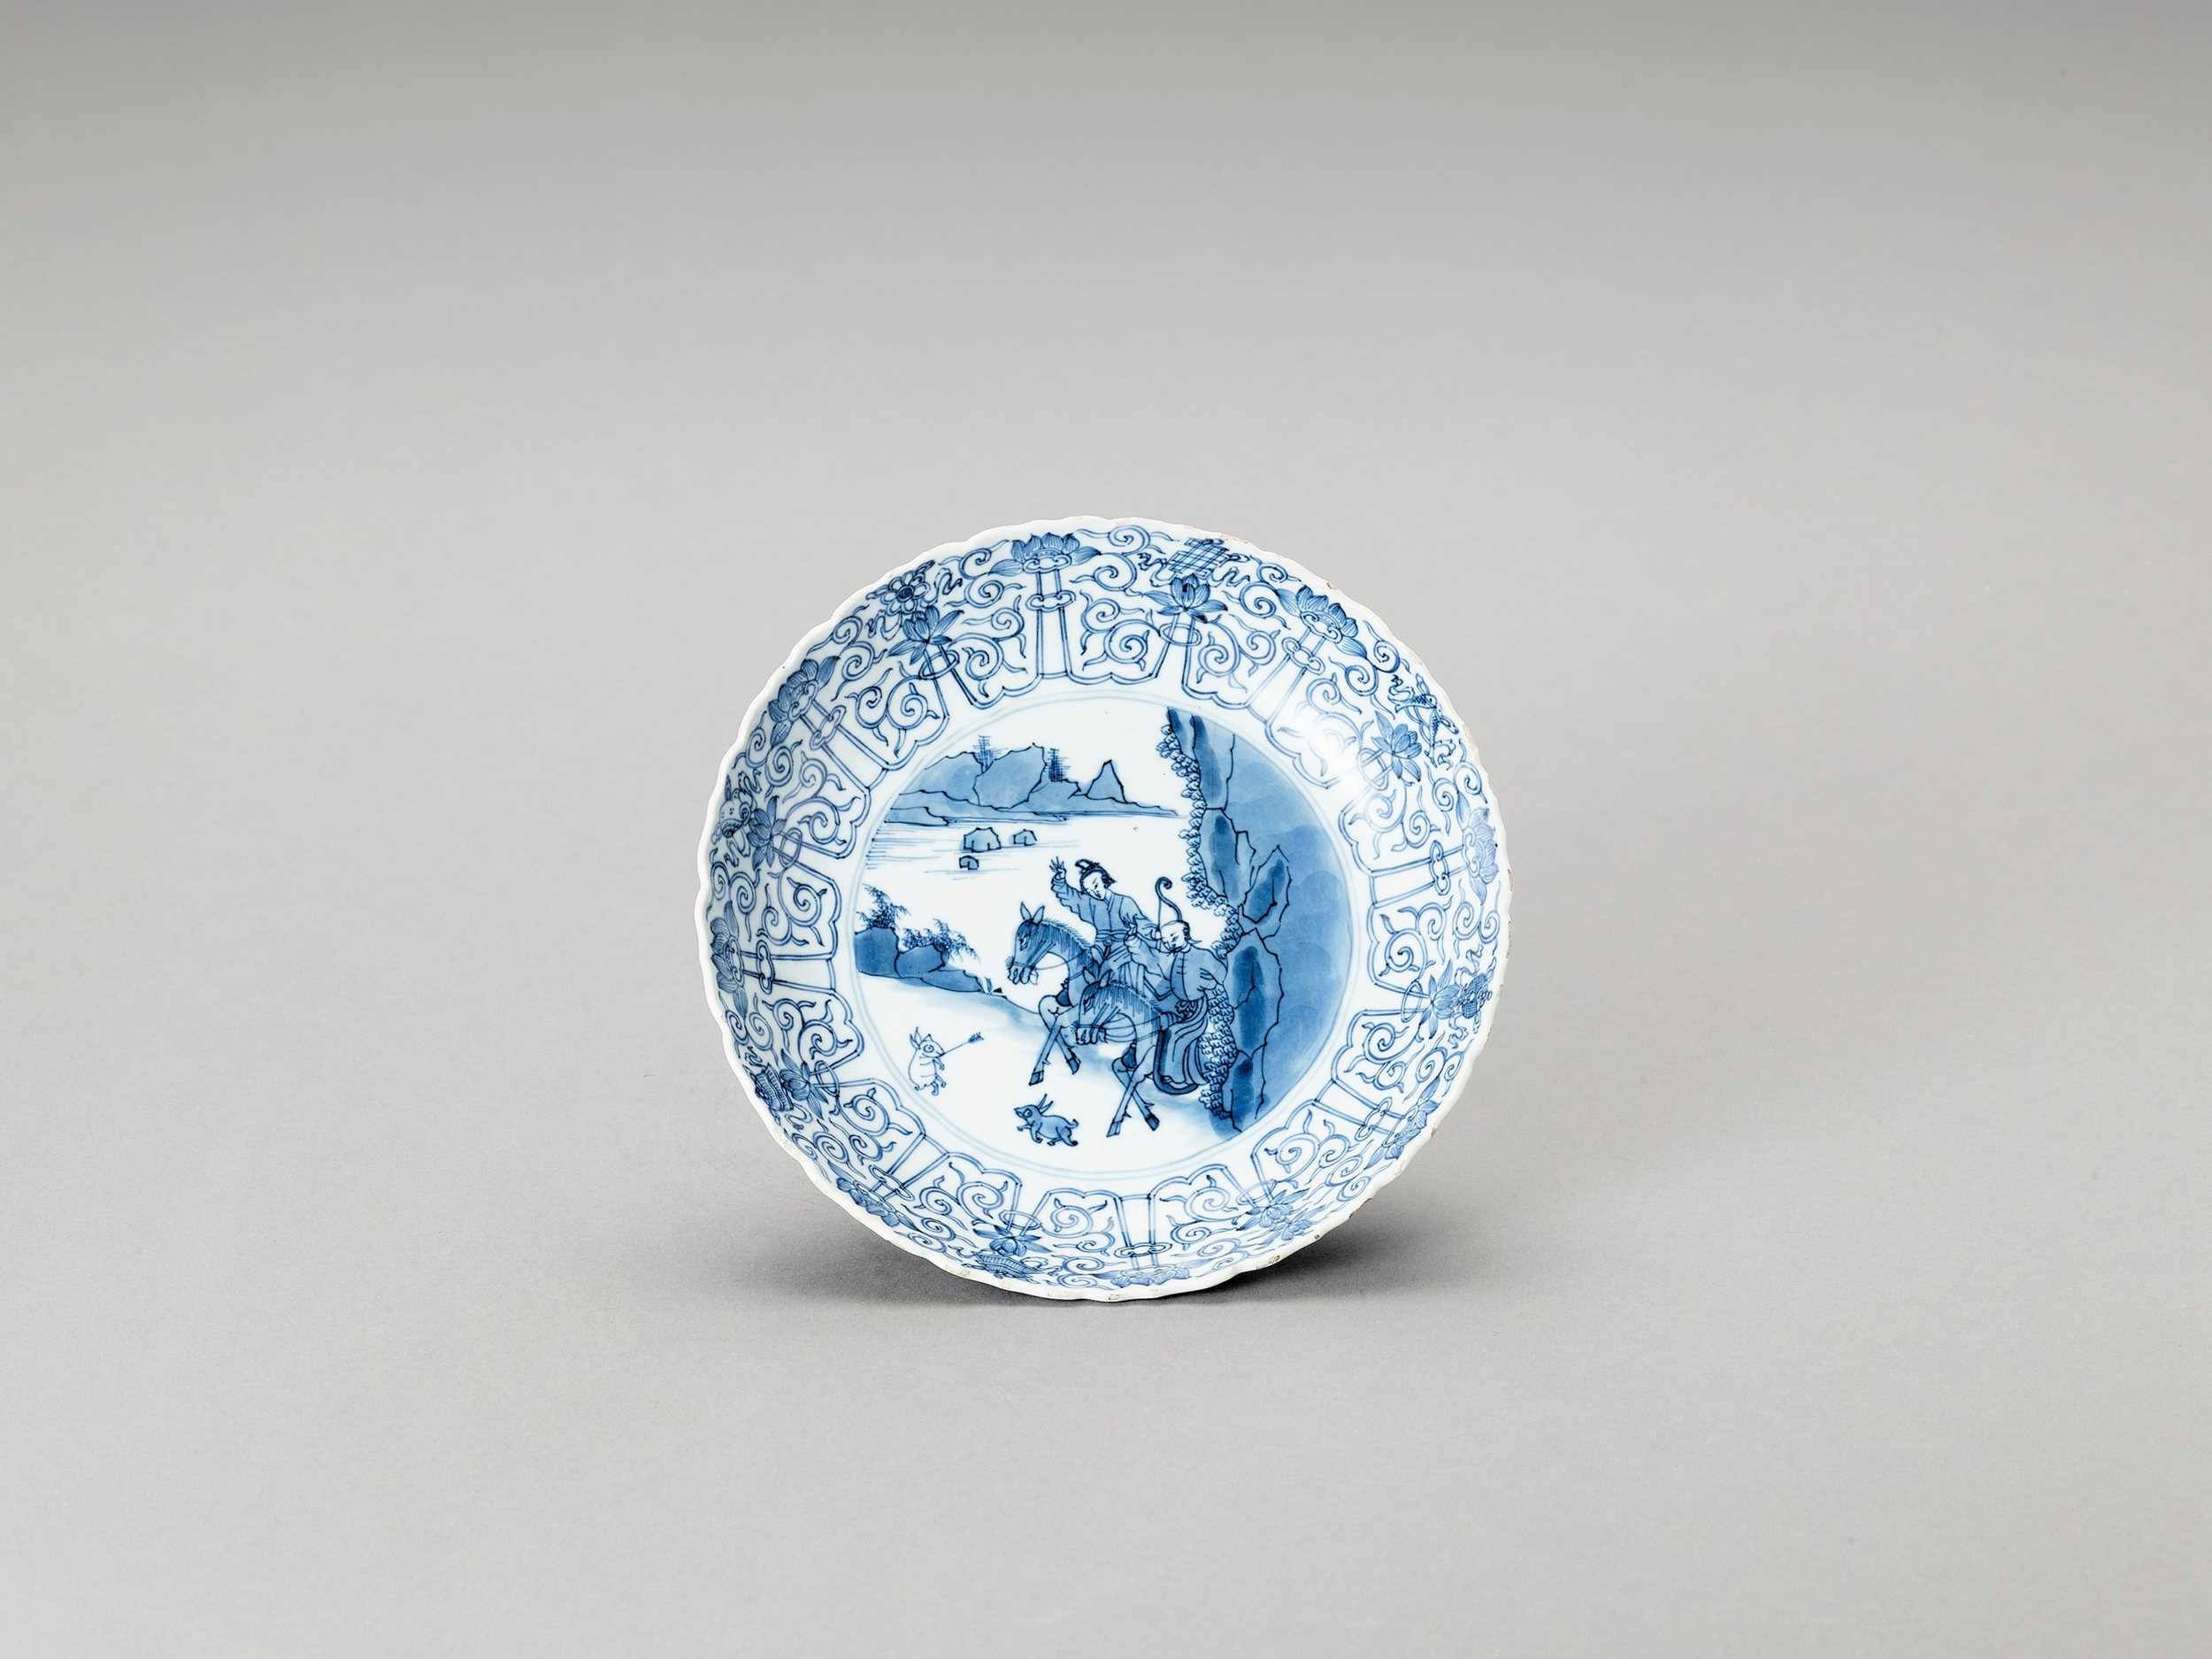 Lot 337 - A BLUE AND WHITE PORCELAIN DISH